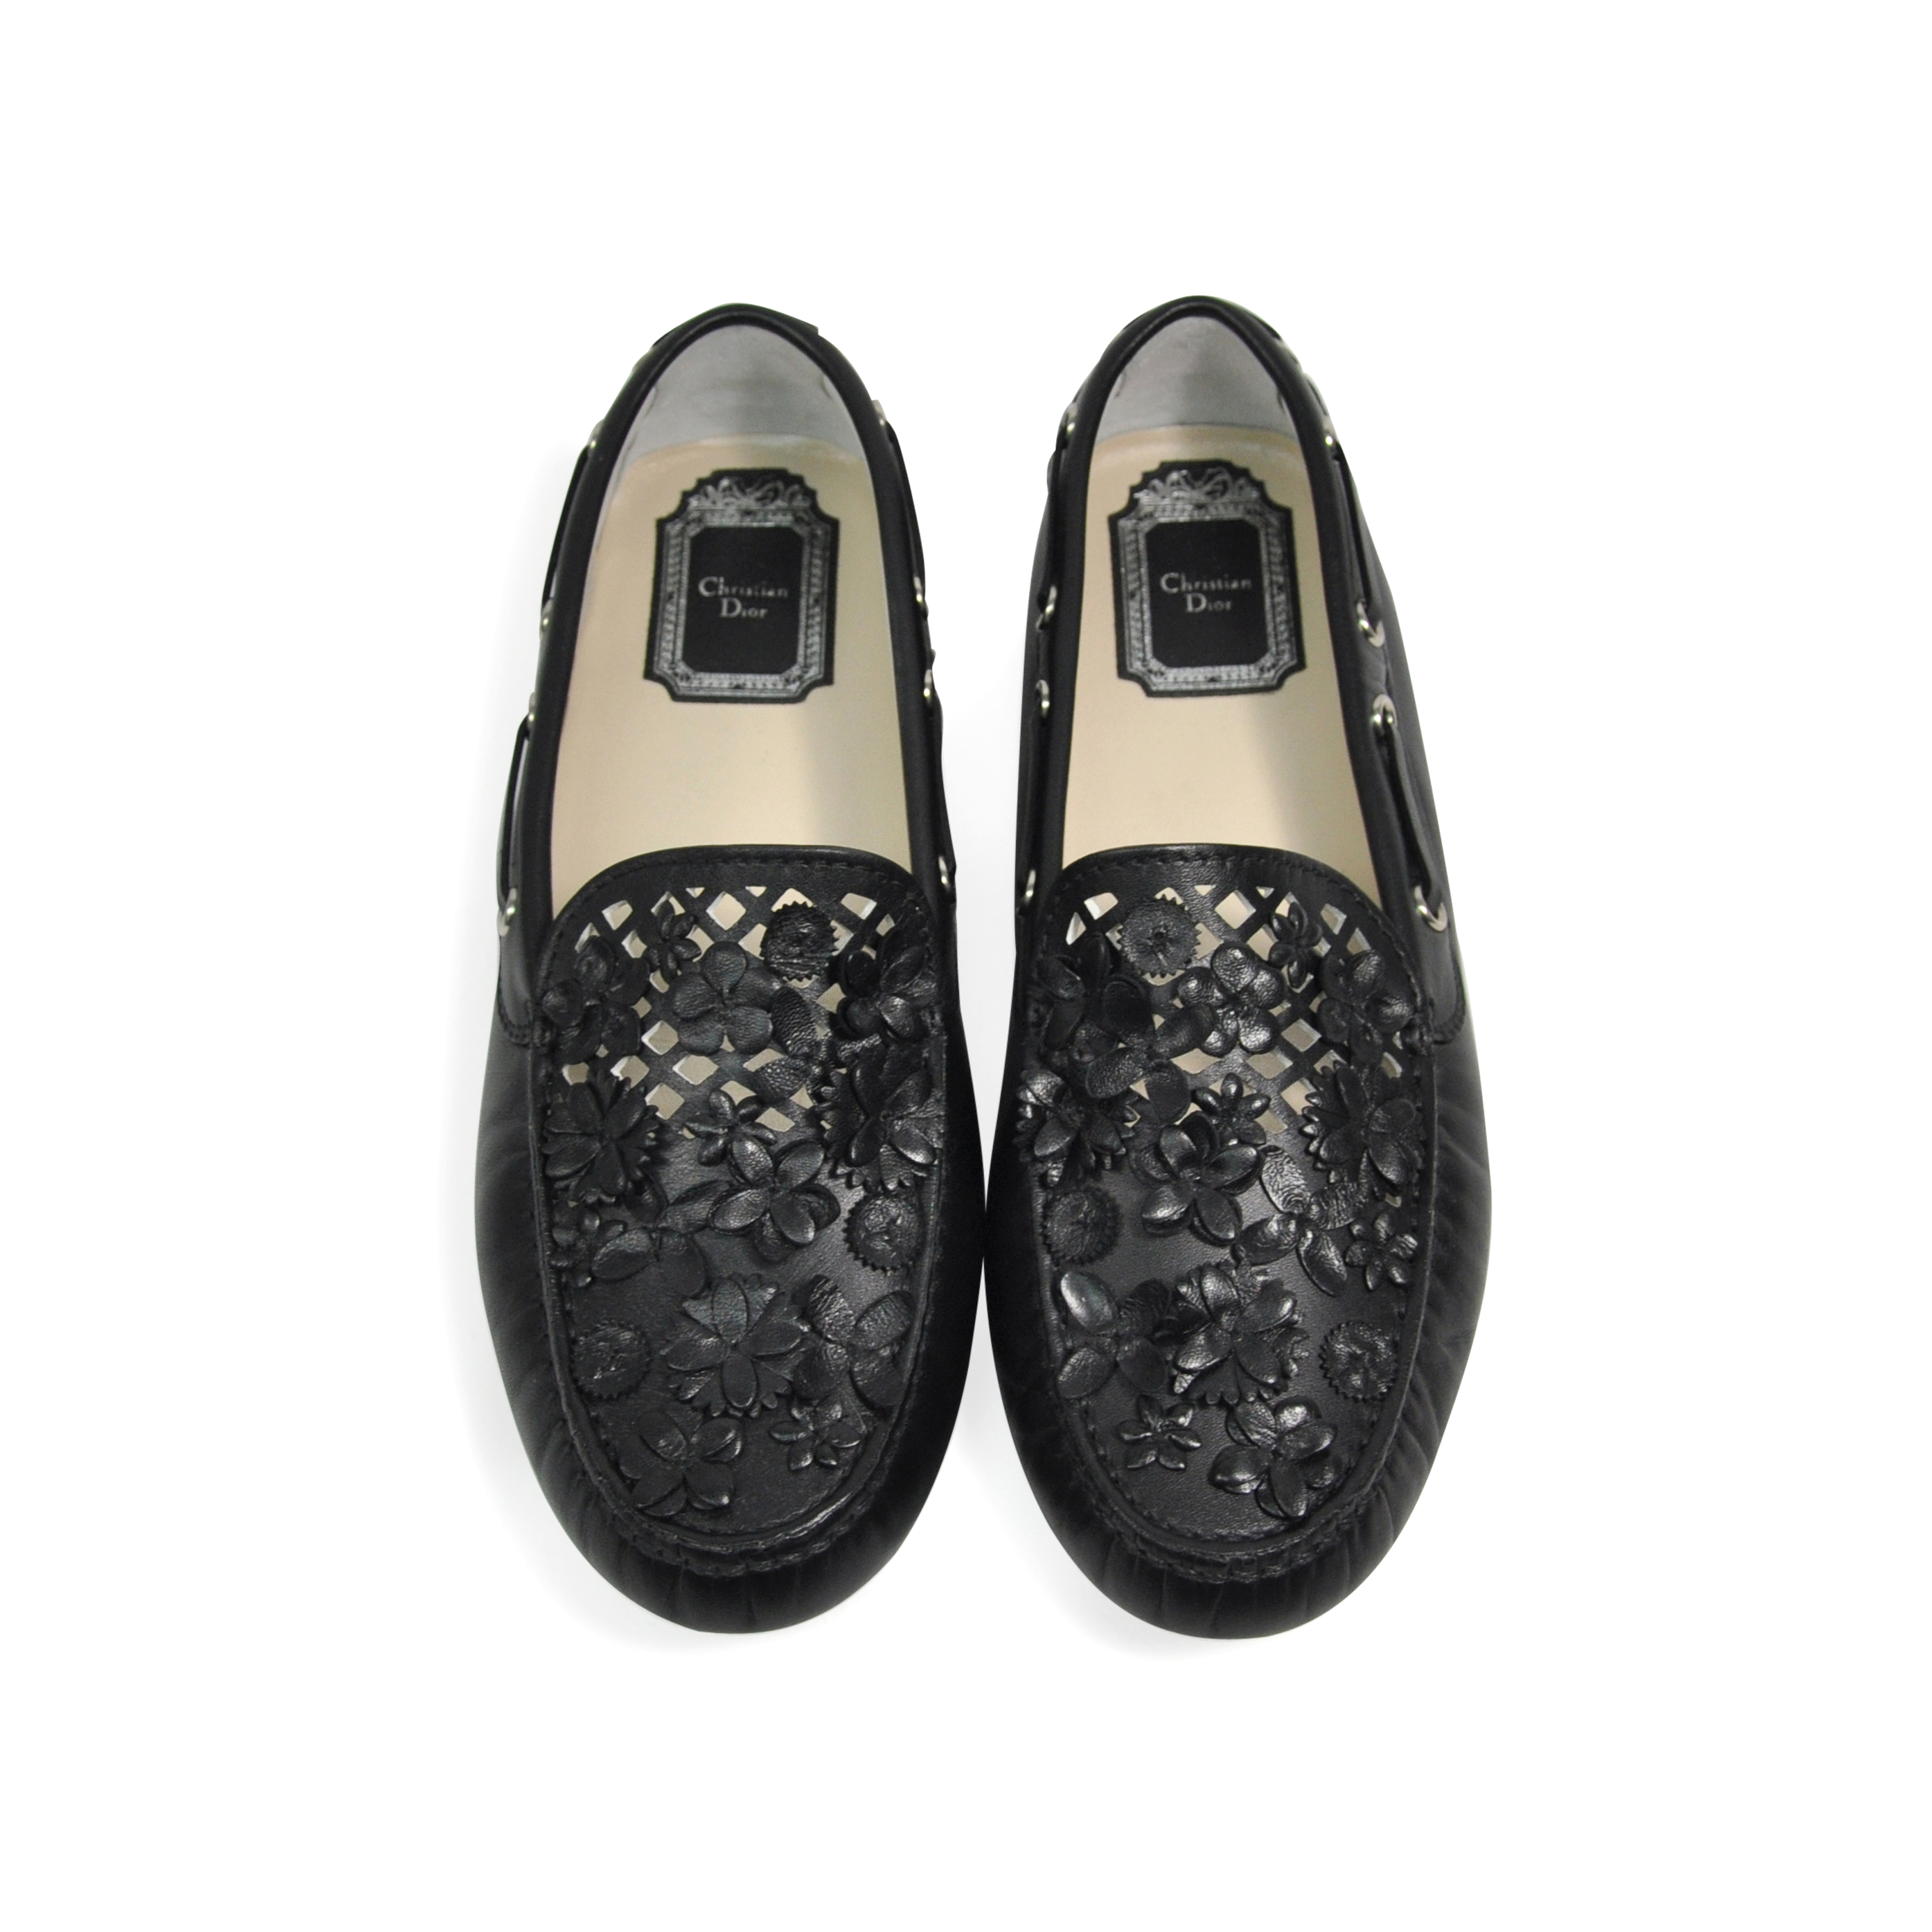 outlet fast delivery Christian Dior Snakeskin Logo Loafers discount wholesale price with mastercard cheap online cheap sale purchase cX8n4v5yM